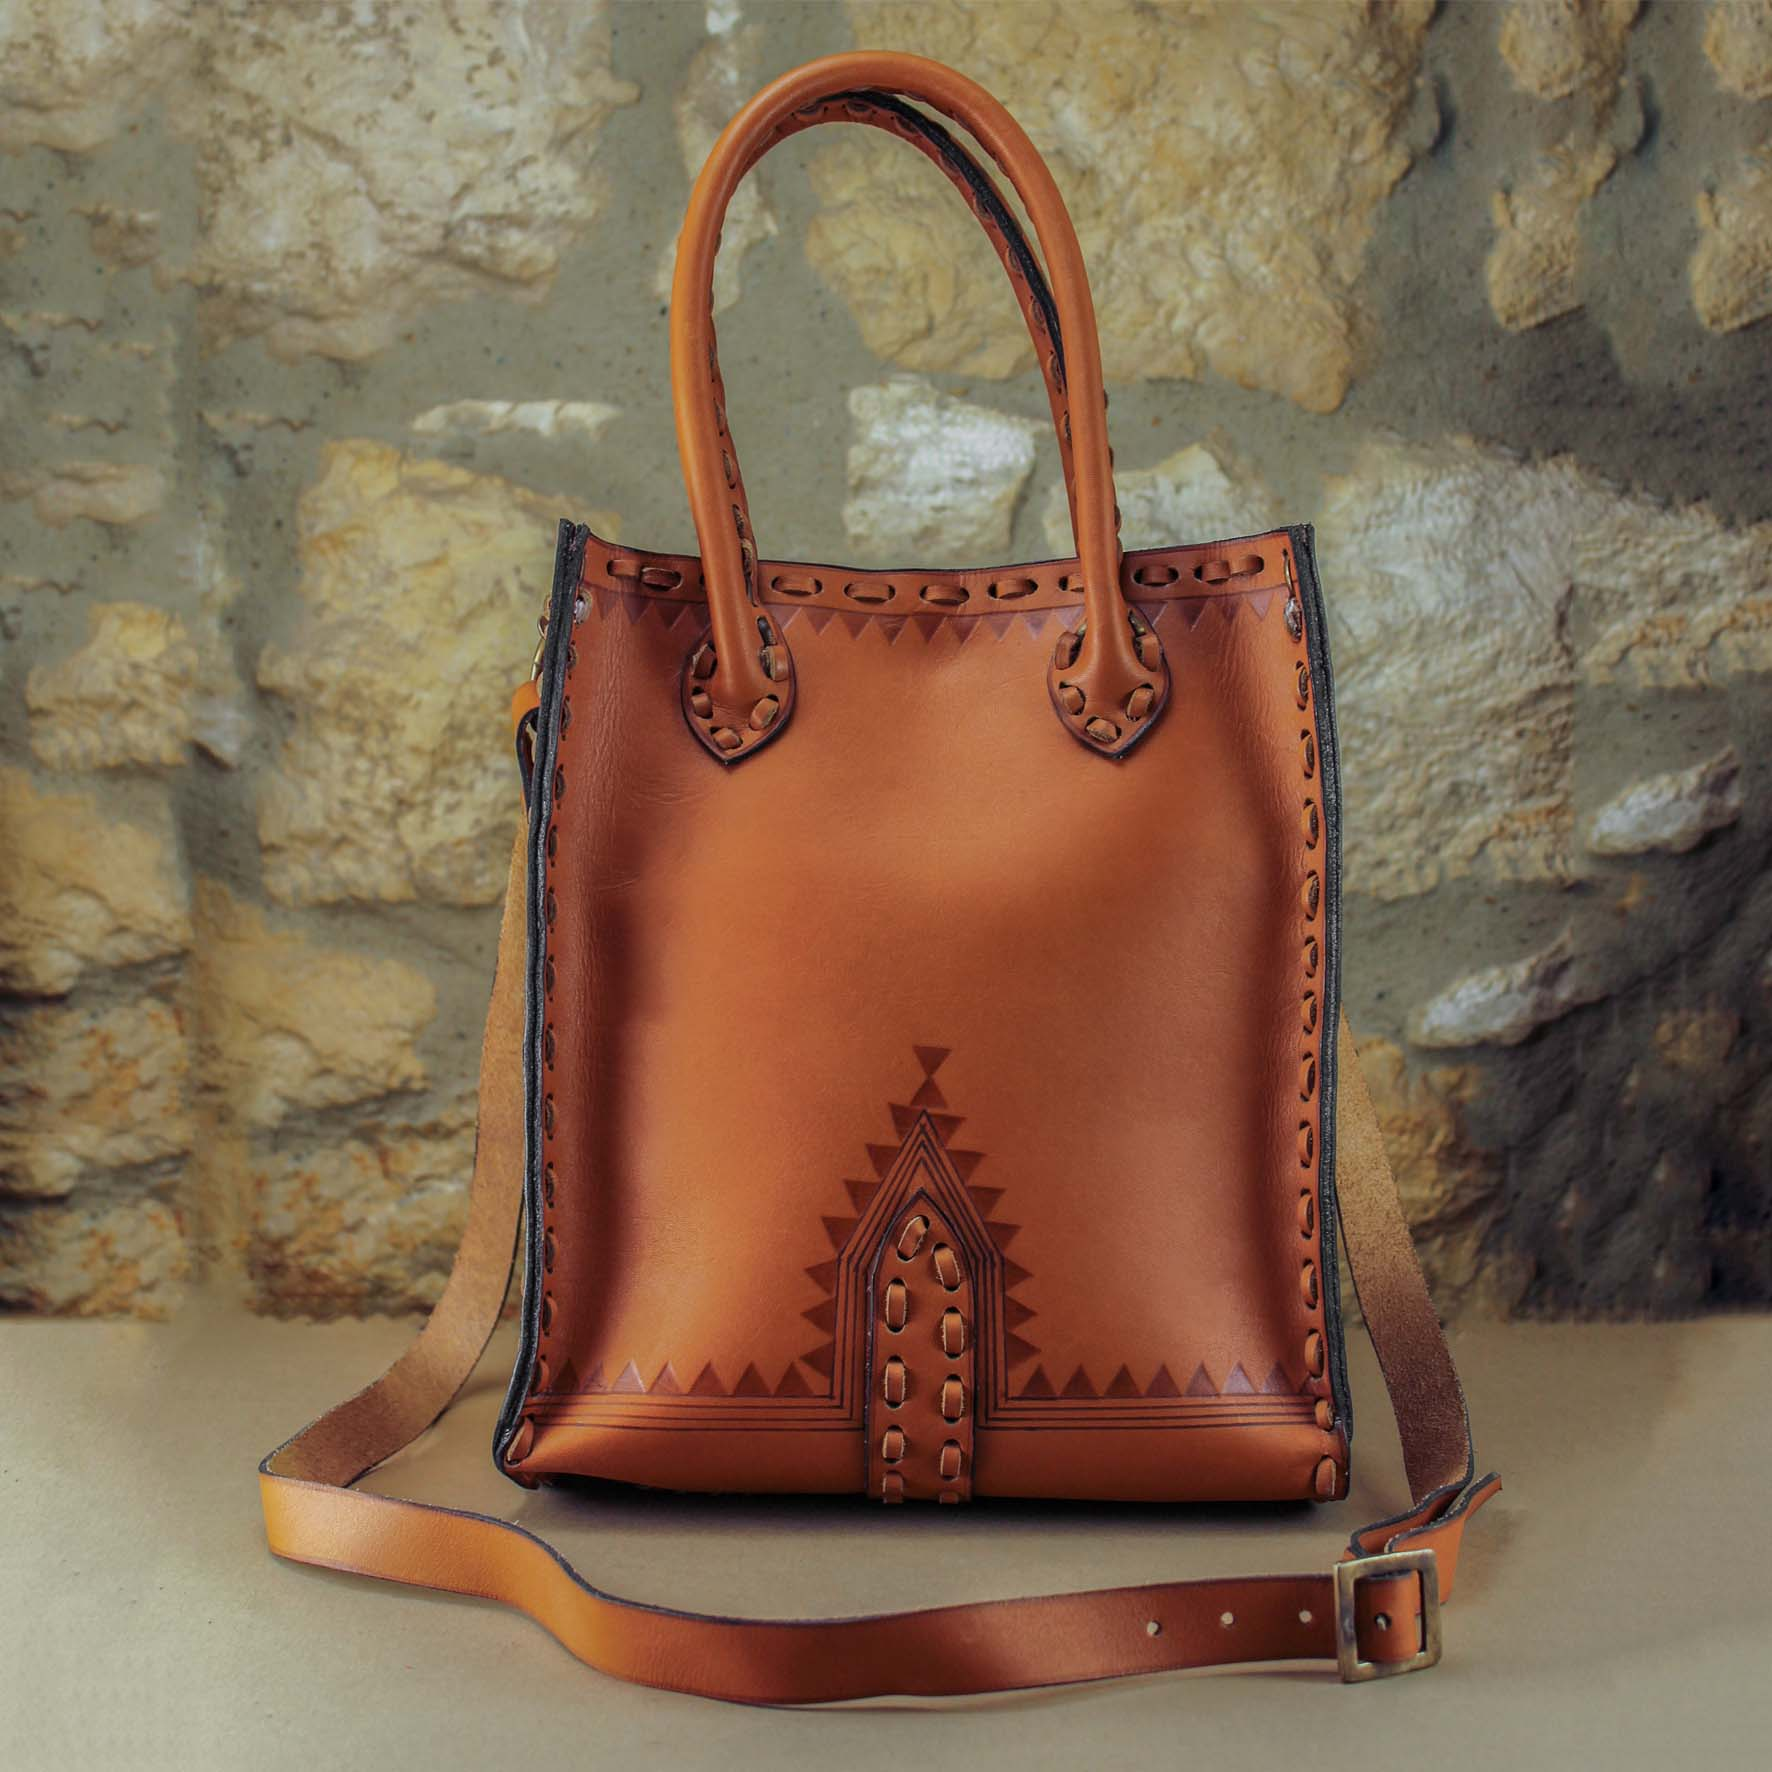 Old, Leather Shopping Bag